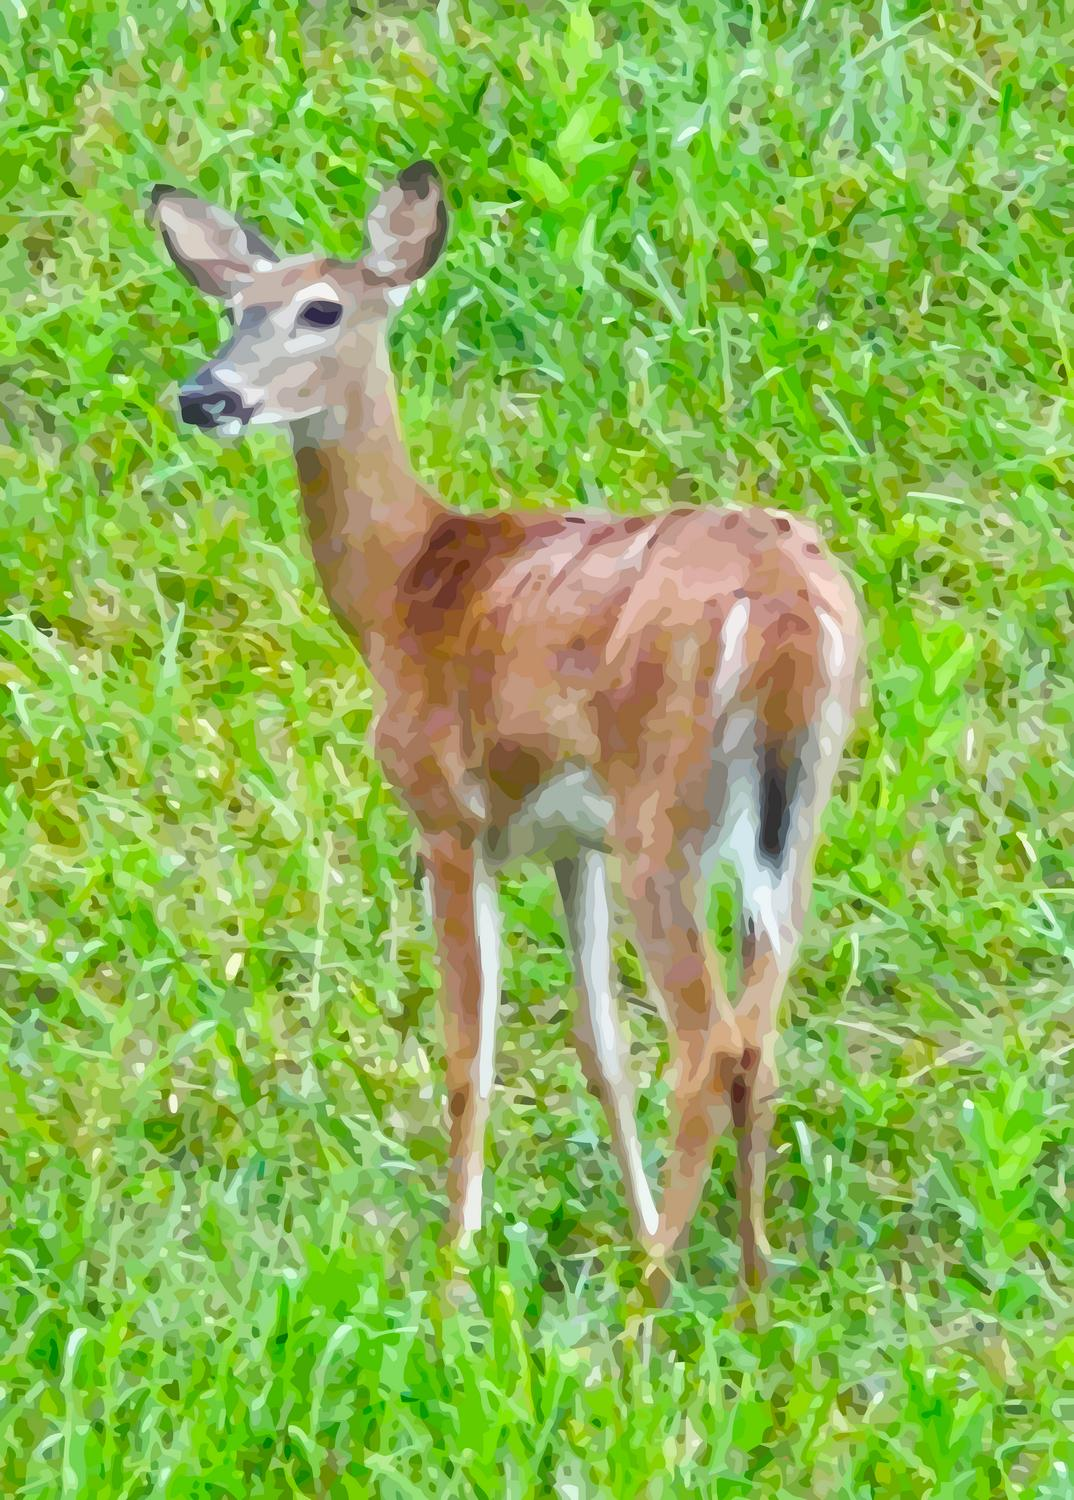 - A young deer keeps an eye on us - - art  - photography - by Tony Karp